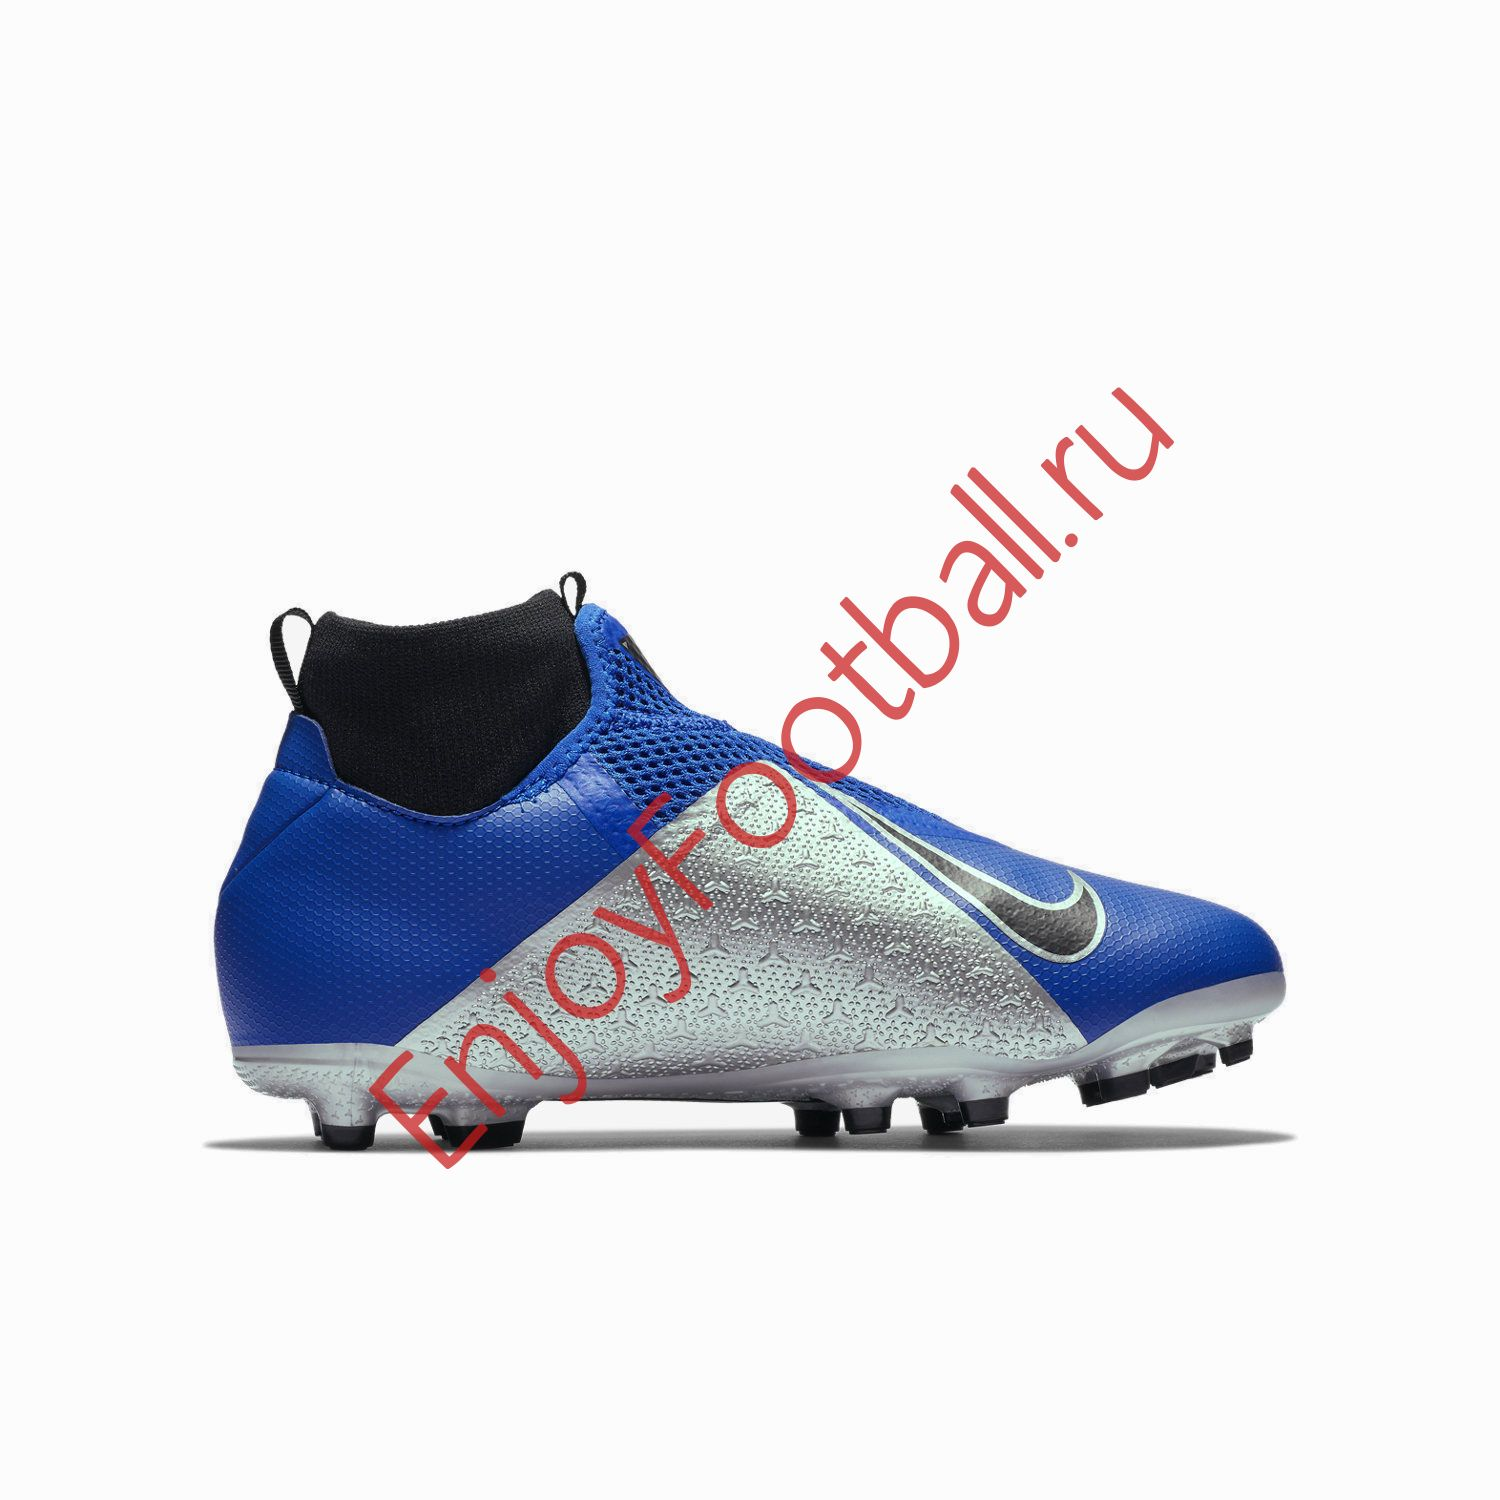 538071c07b3d ... Детские бутсы NIKE PHANTOM VSN ACADEMY DF FG MG AO3287-400 JR